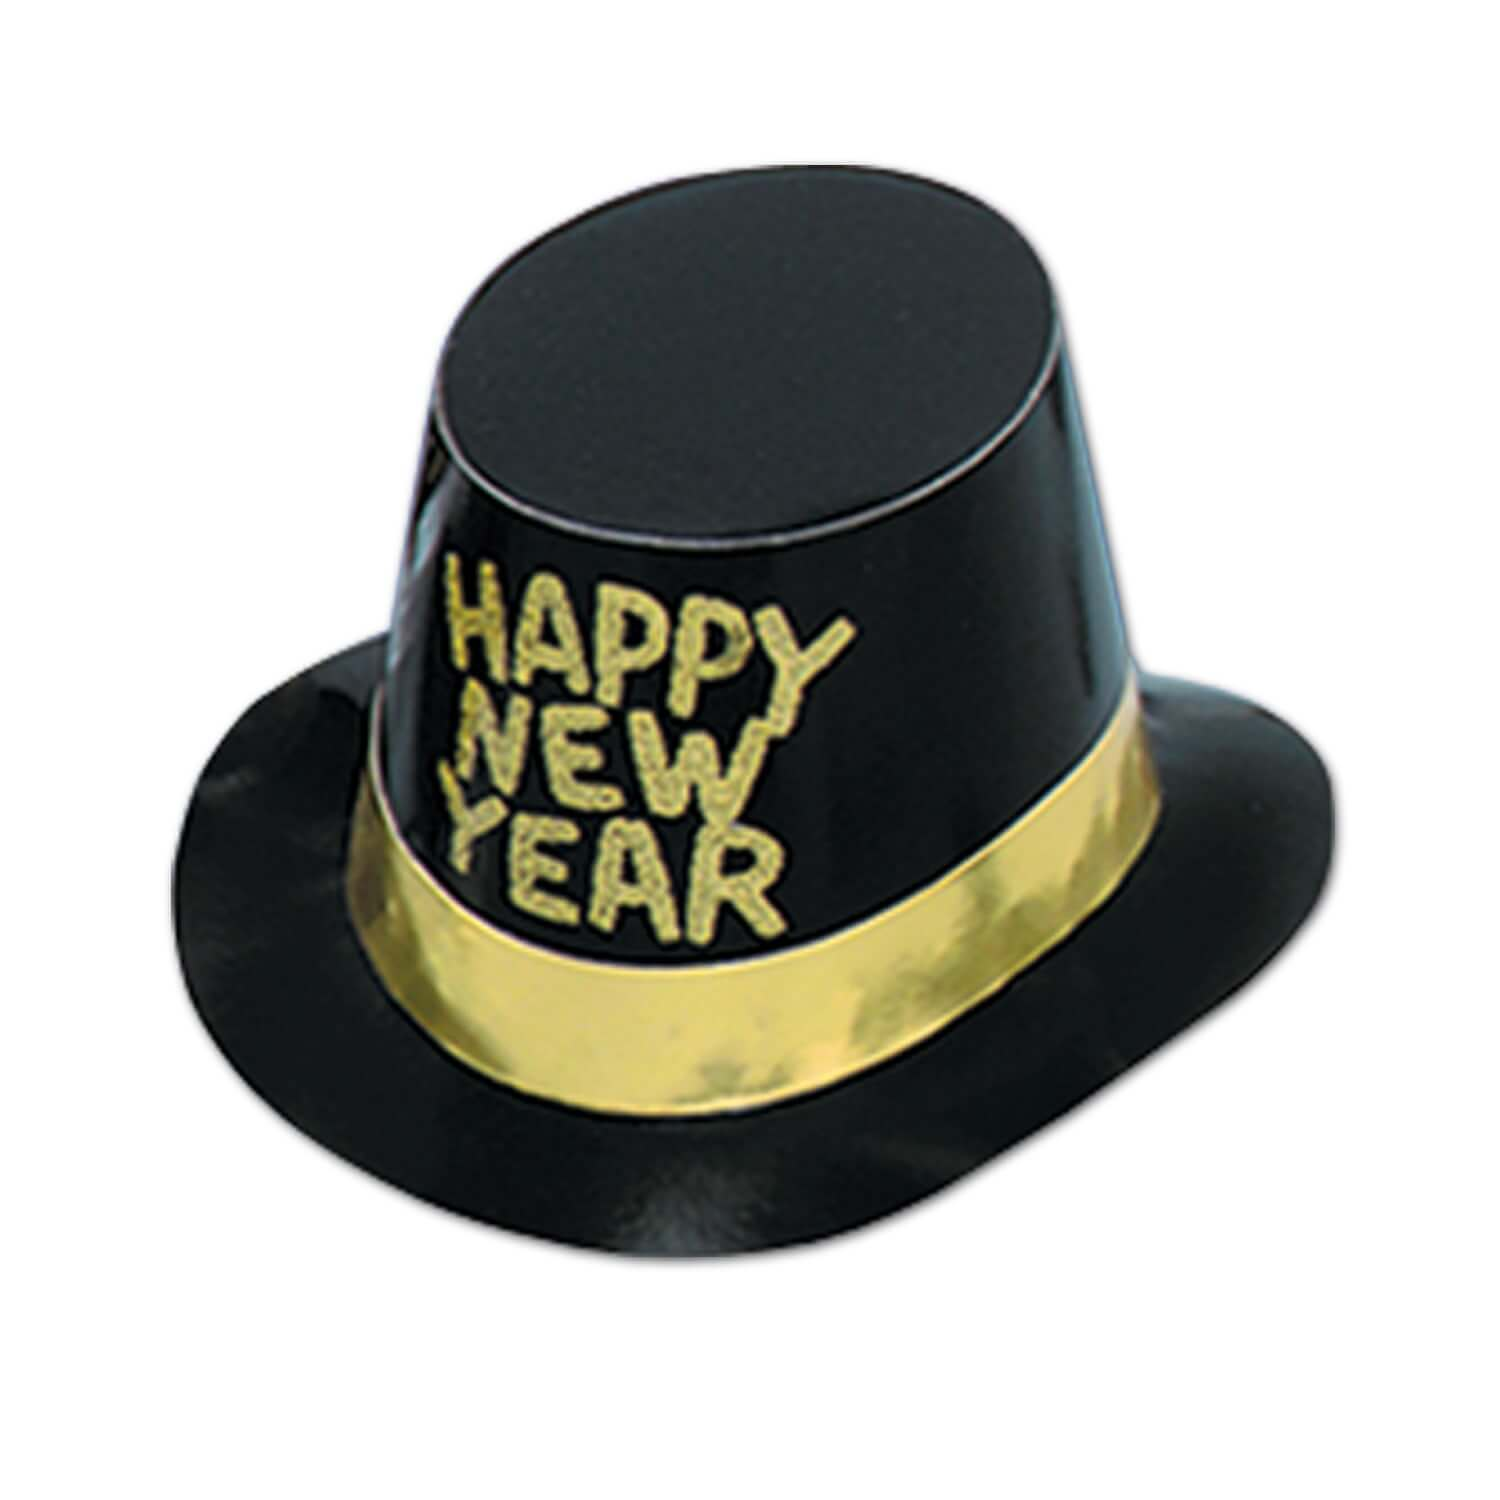 "Black hi-hat with a gold band and gold glitter words that read ""Happy New Year""."